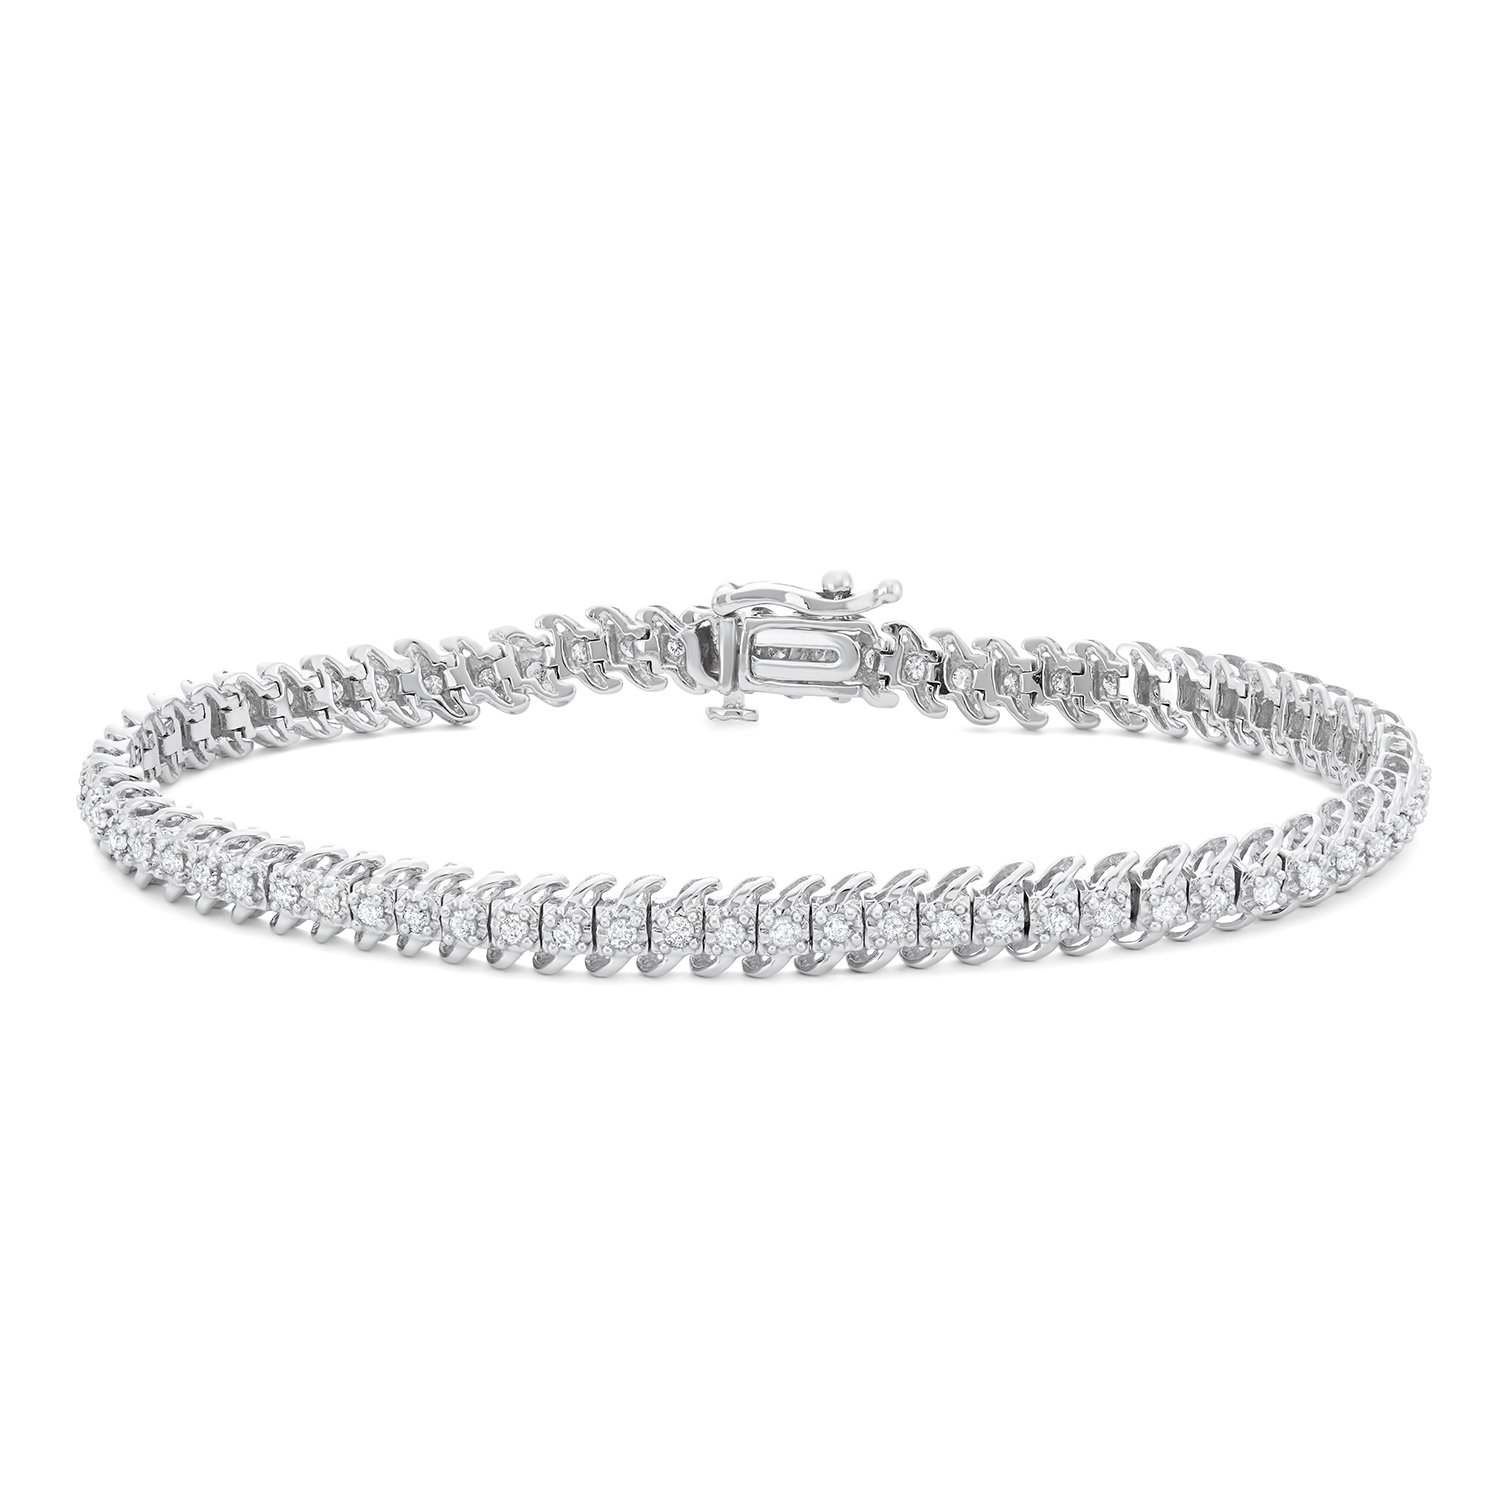 1 CTTW White Diamonds Tennis Bracelet in 10KT Gold (I-J, I1-I2)